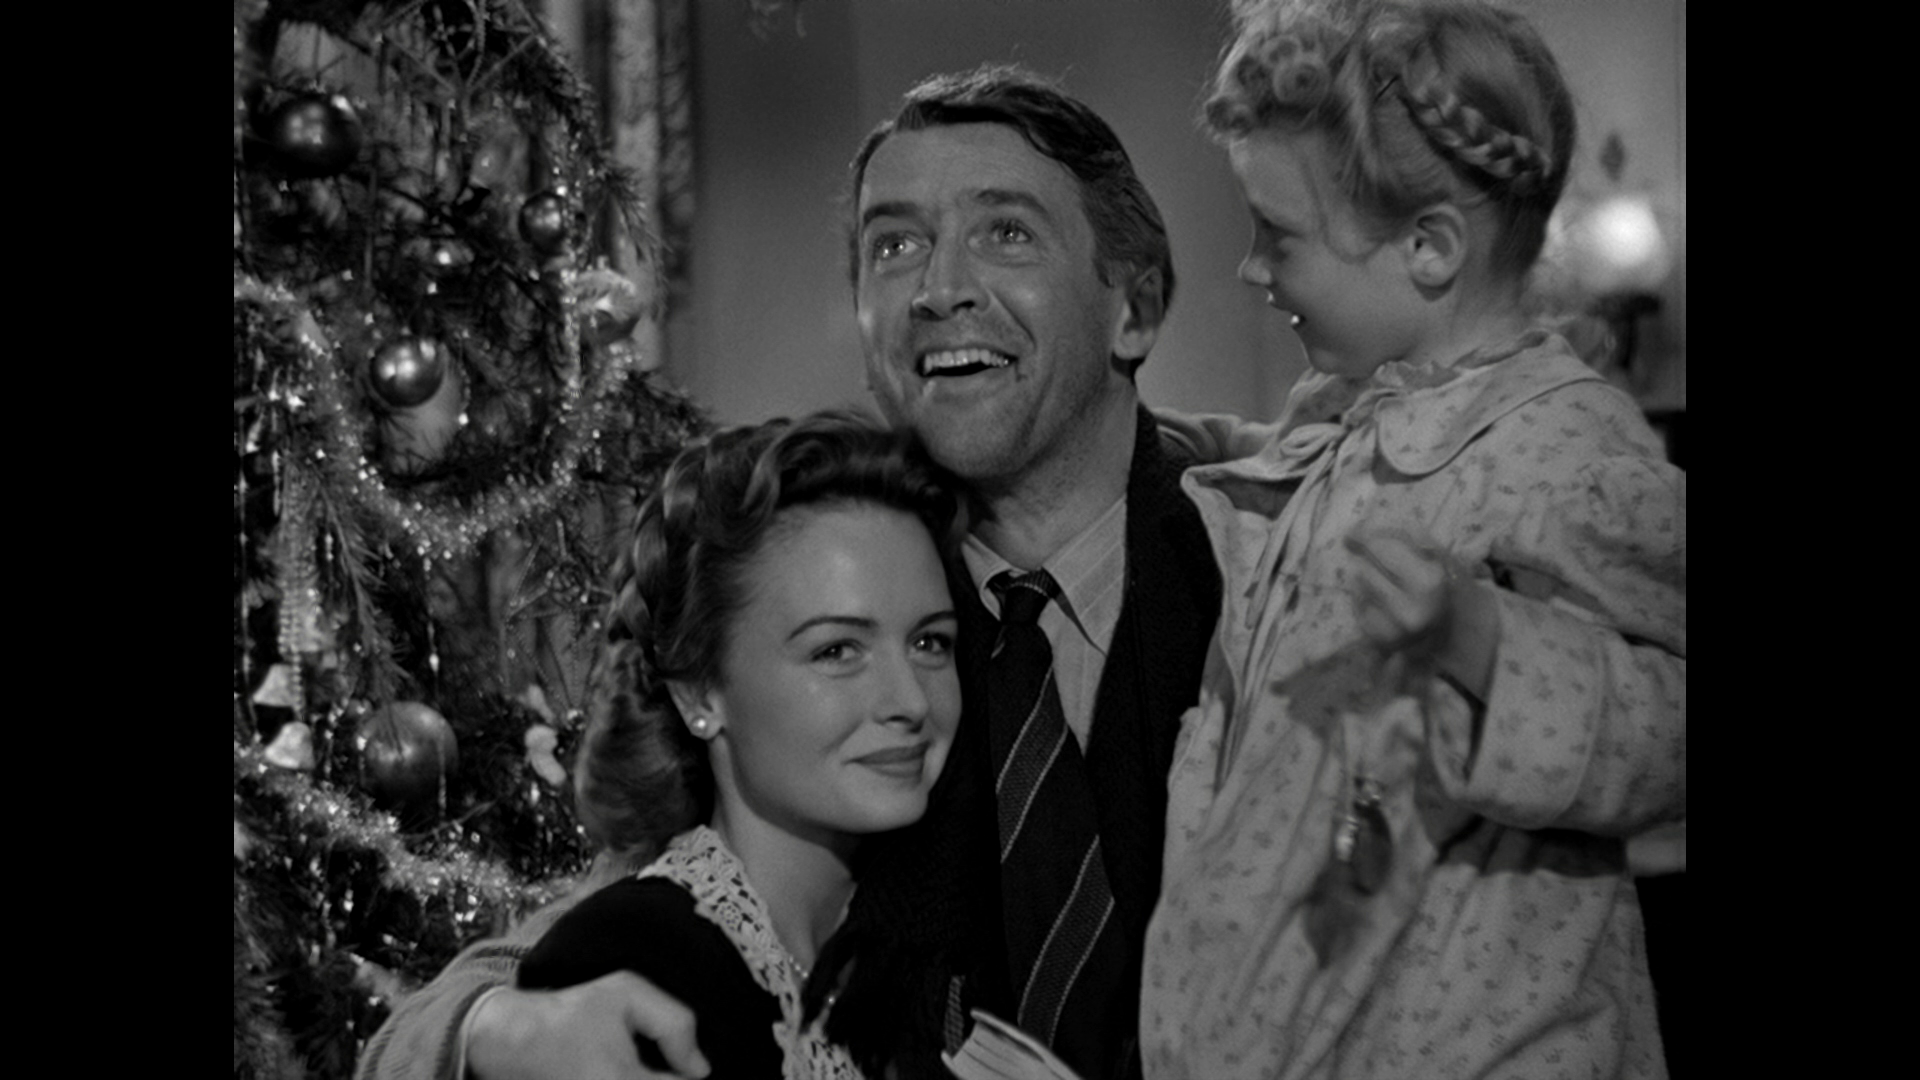 from: It's a Wonderful Life, 1946. Director: Frank Capra